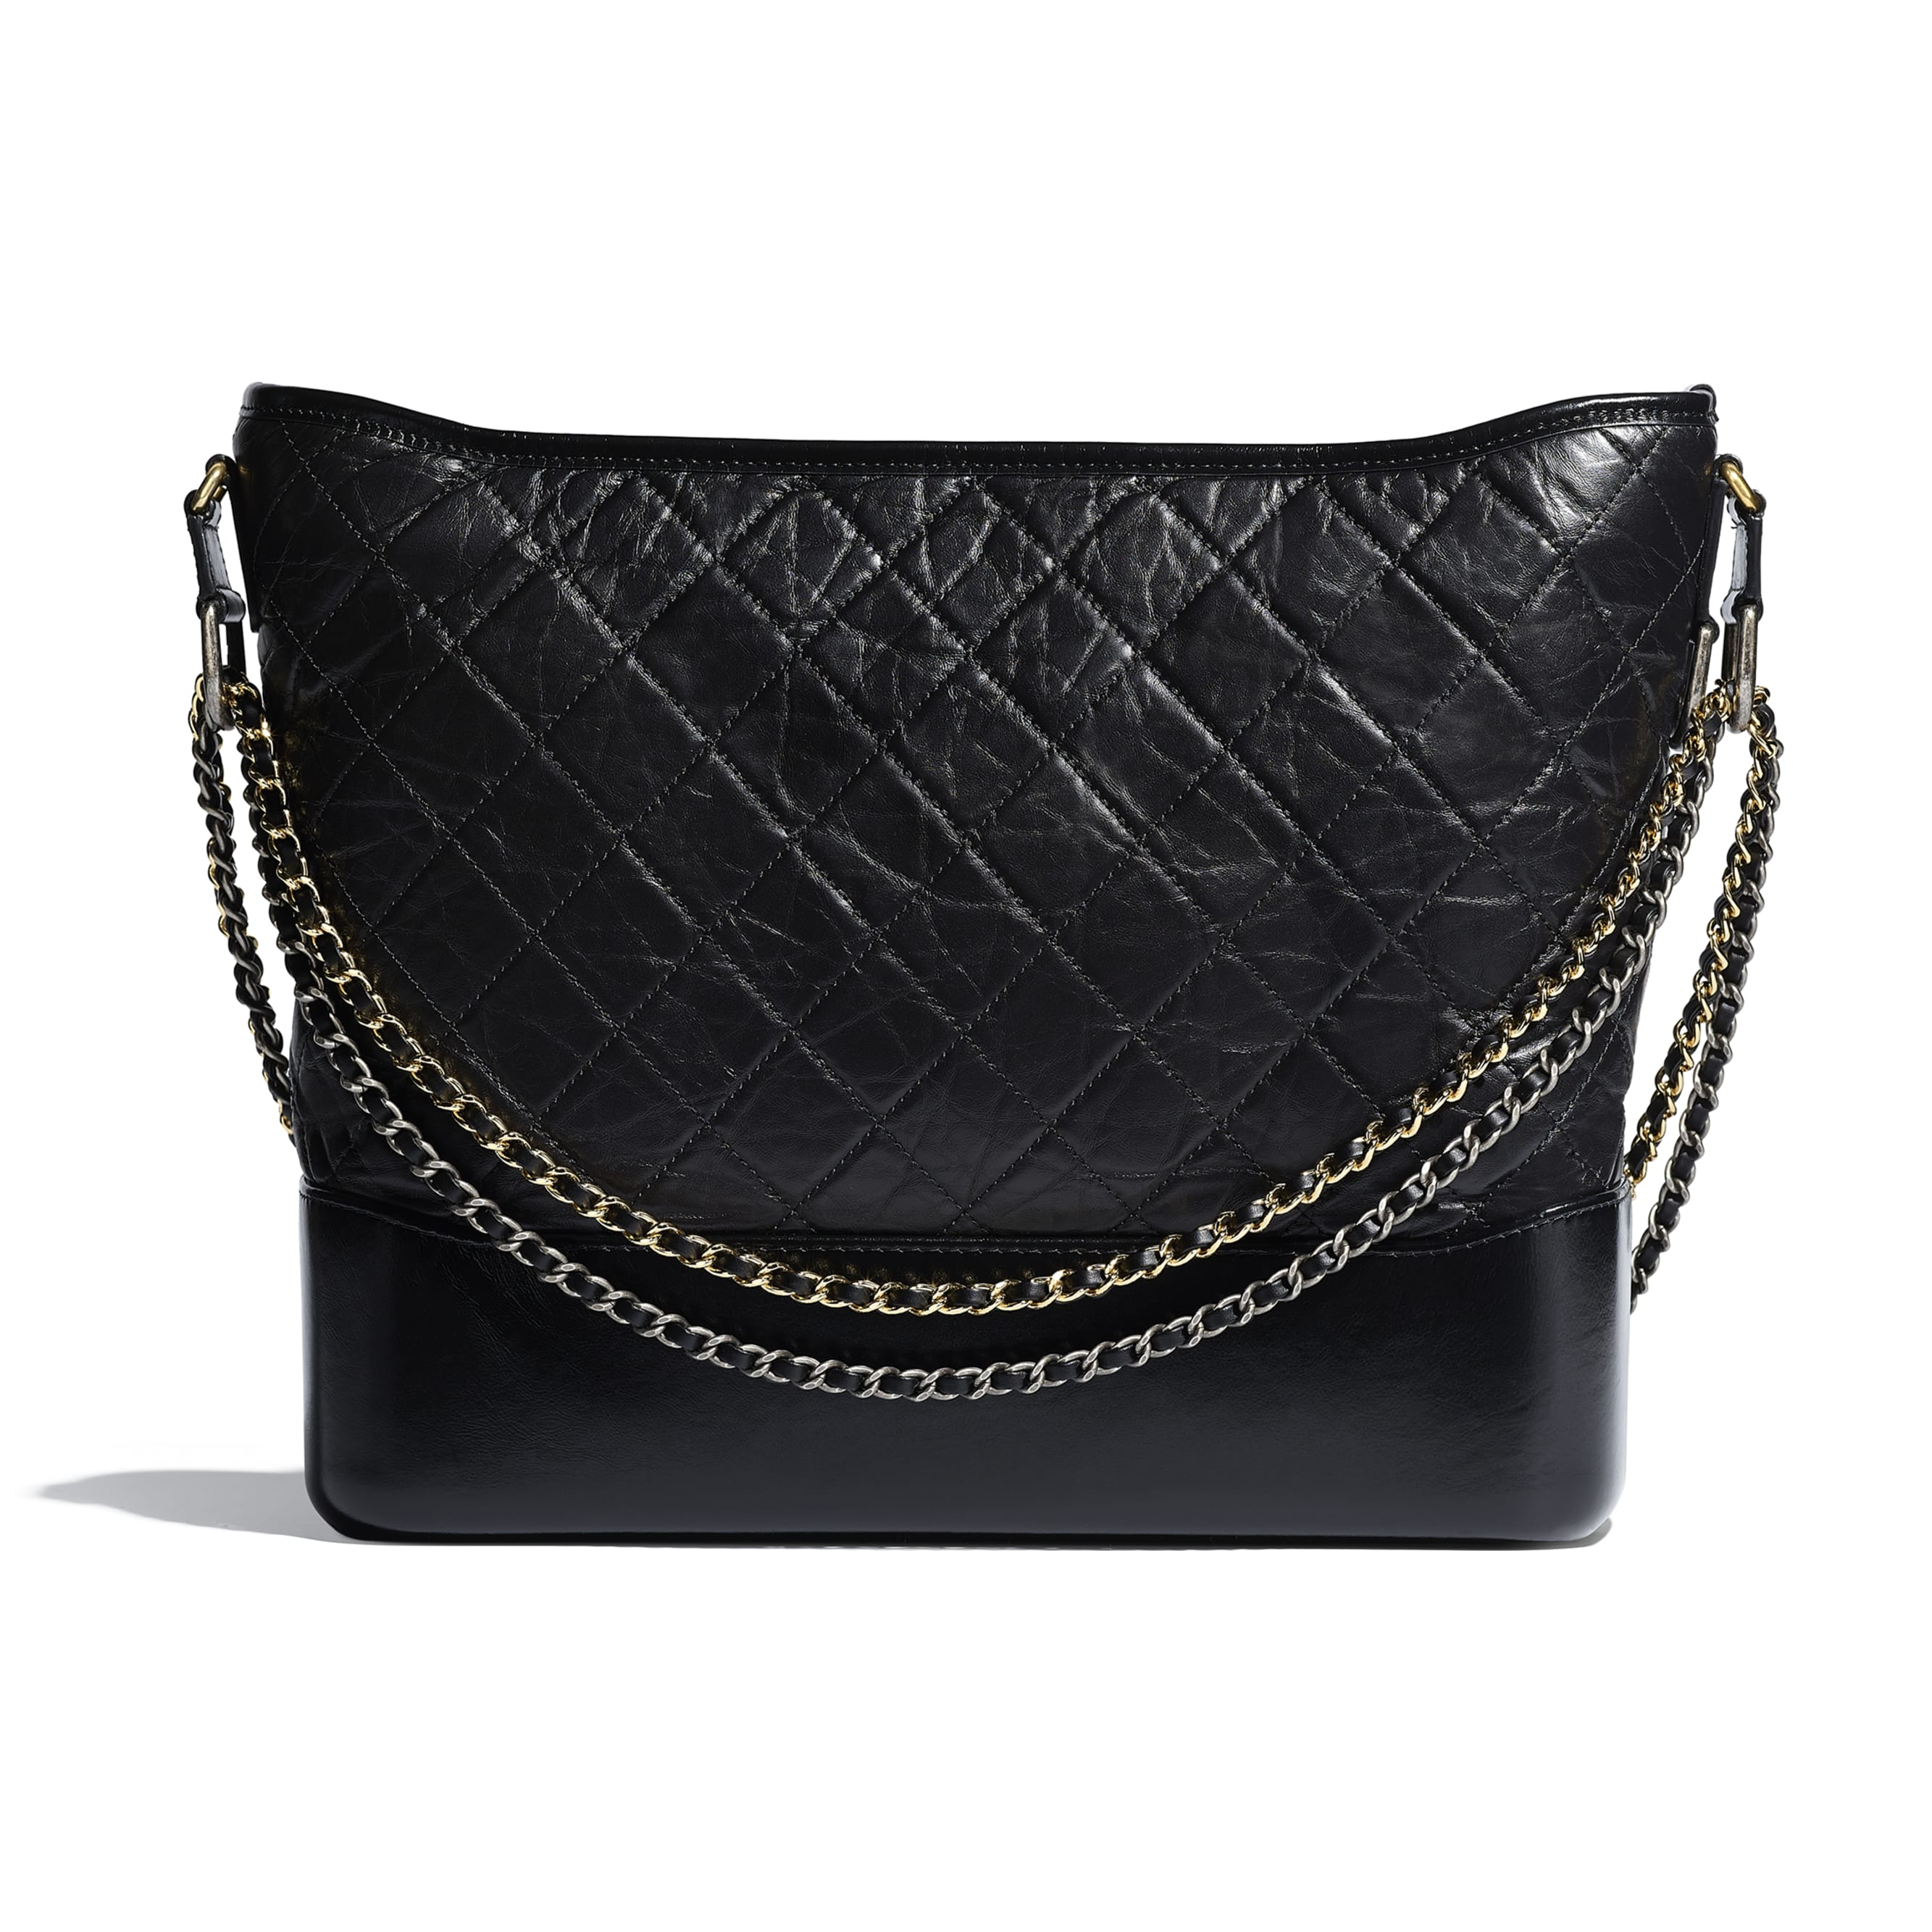 CHANEL'S GABRIELLE Large Hobo Bag - Black - Aged Calfskin, Smooth Calfskin, Silver-Tone & Gold-Tone Metal - Alternative view - see standard sized version